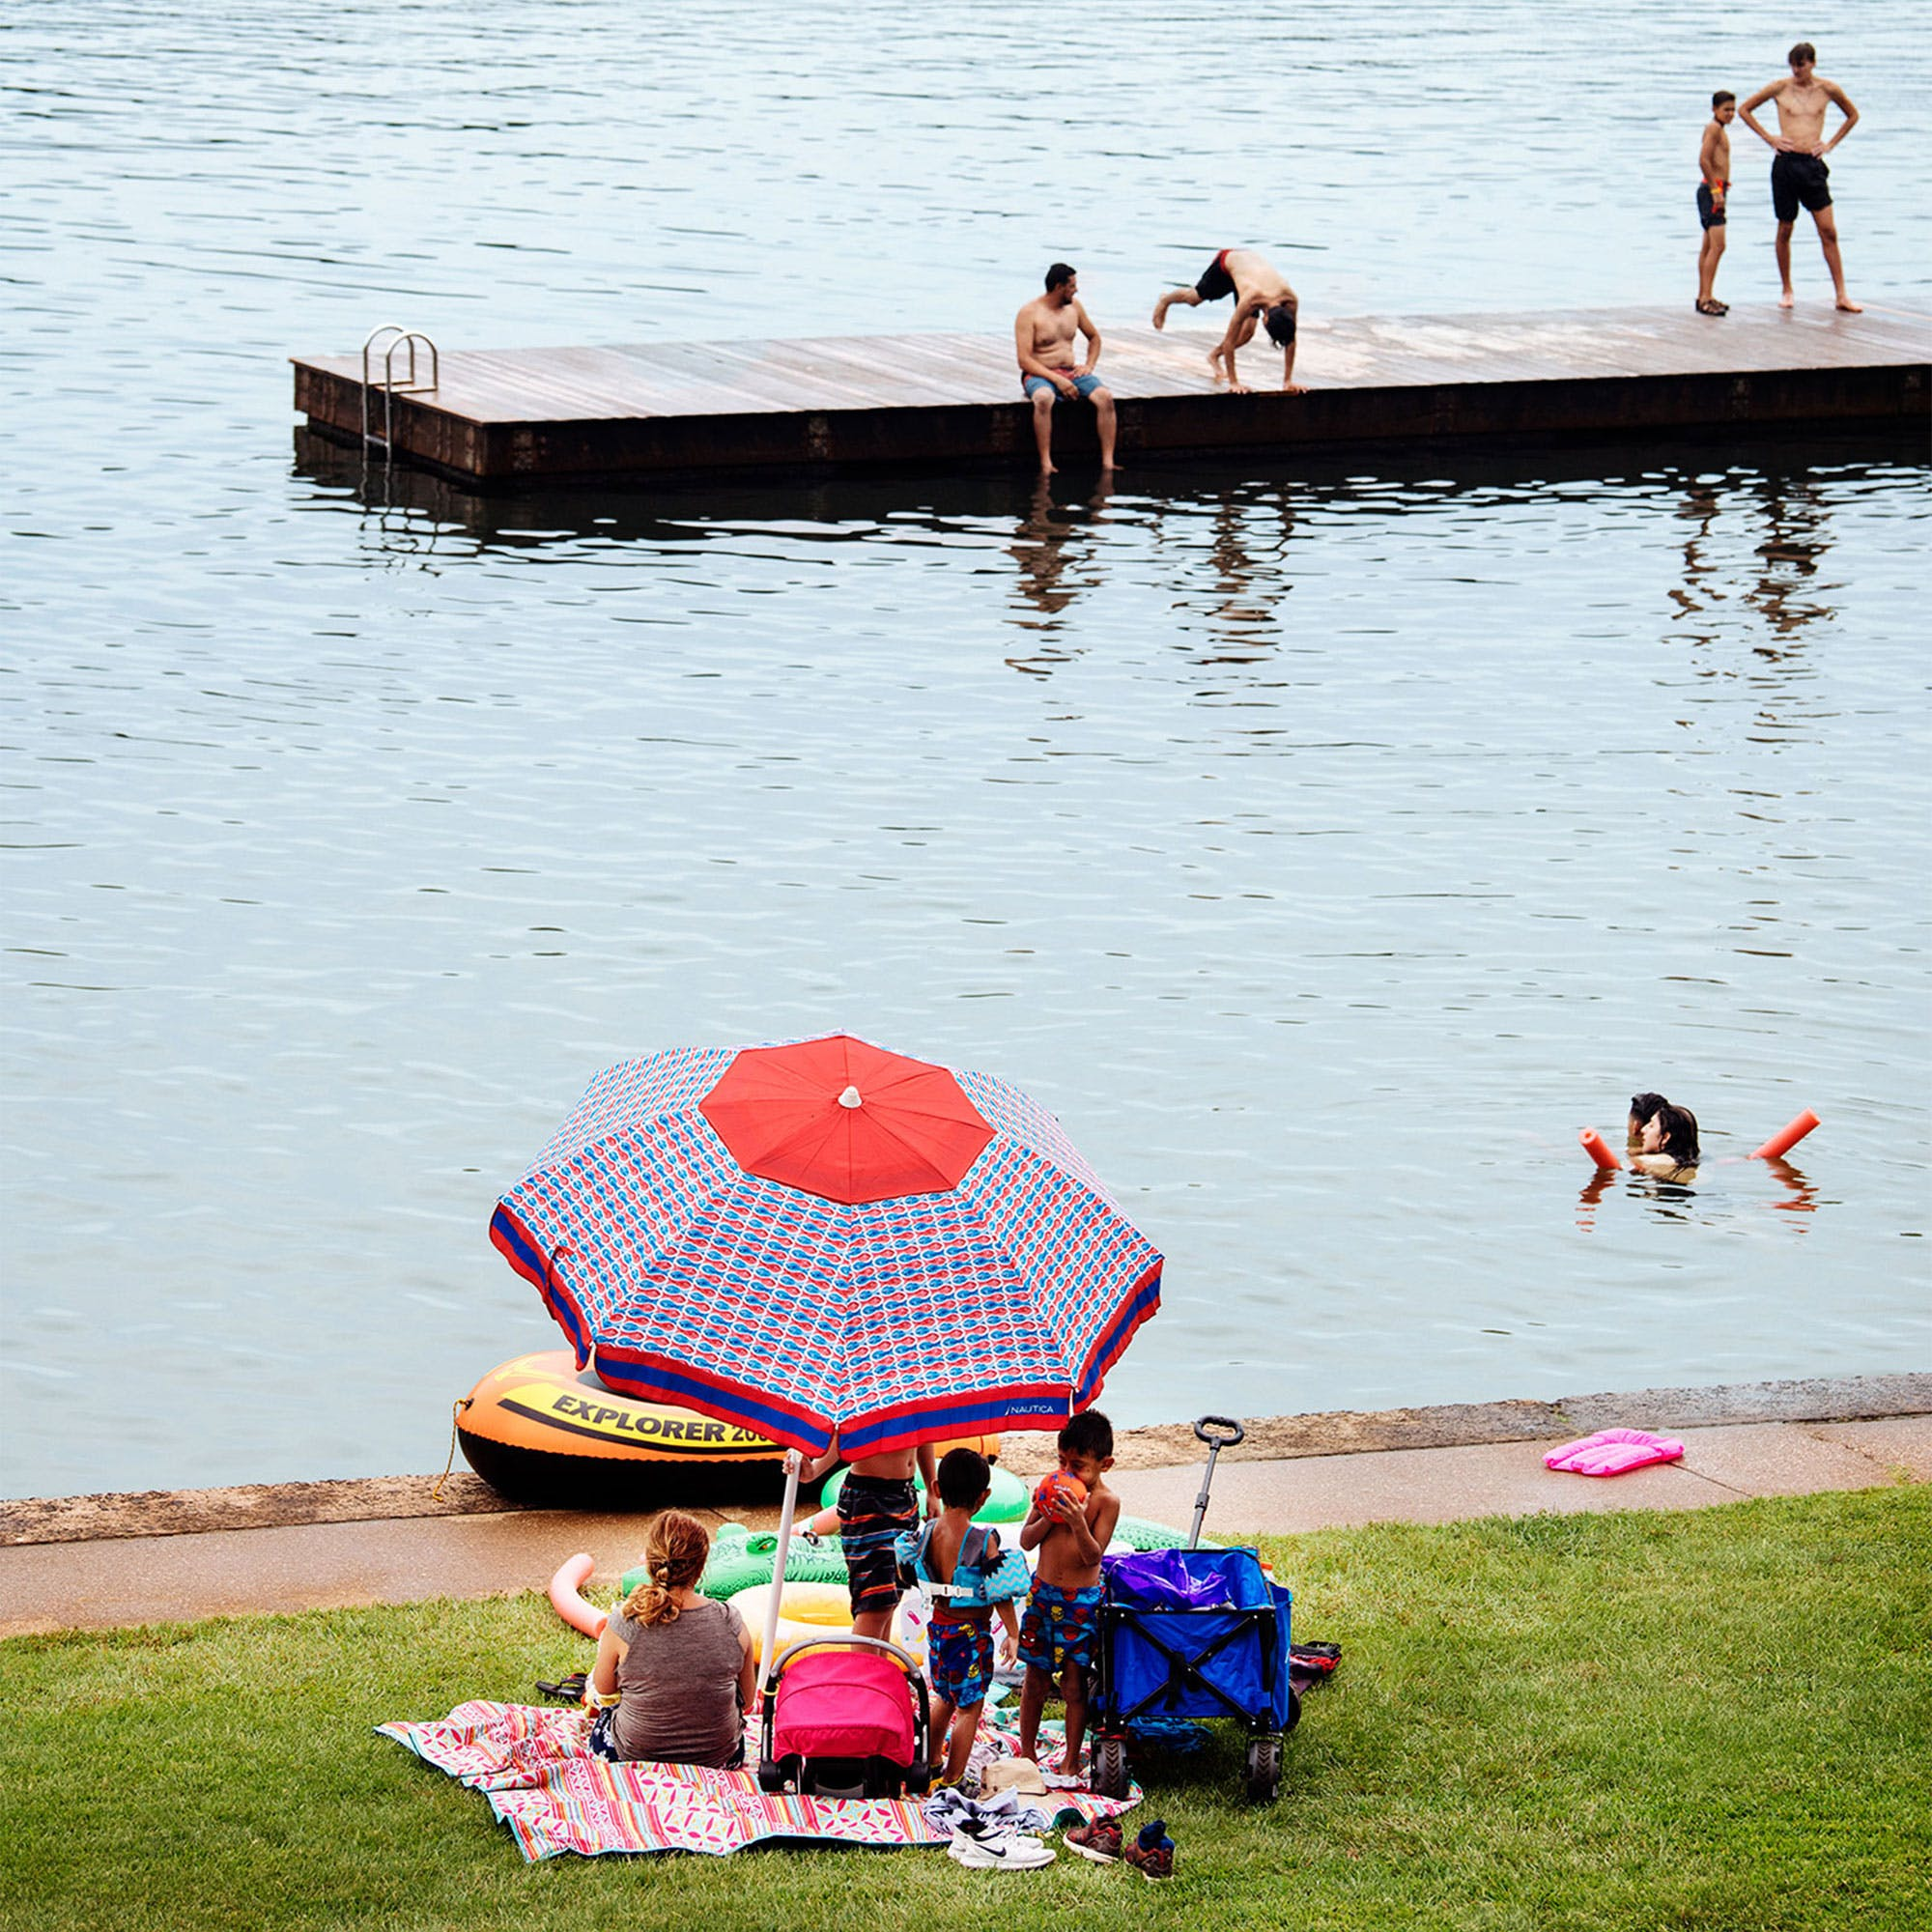 Carefree park-goers enjoying the lake pre-pandemic, in August 2019.